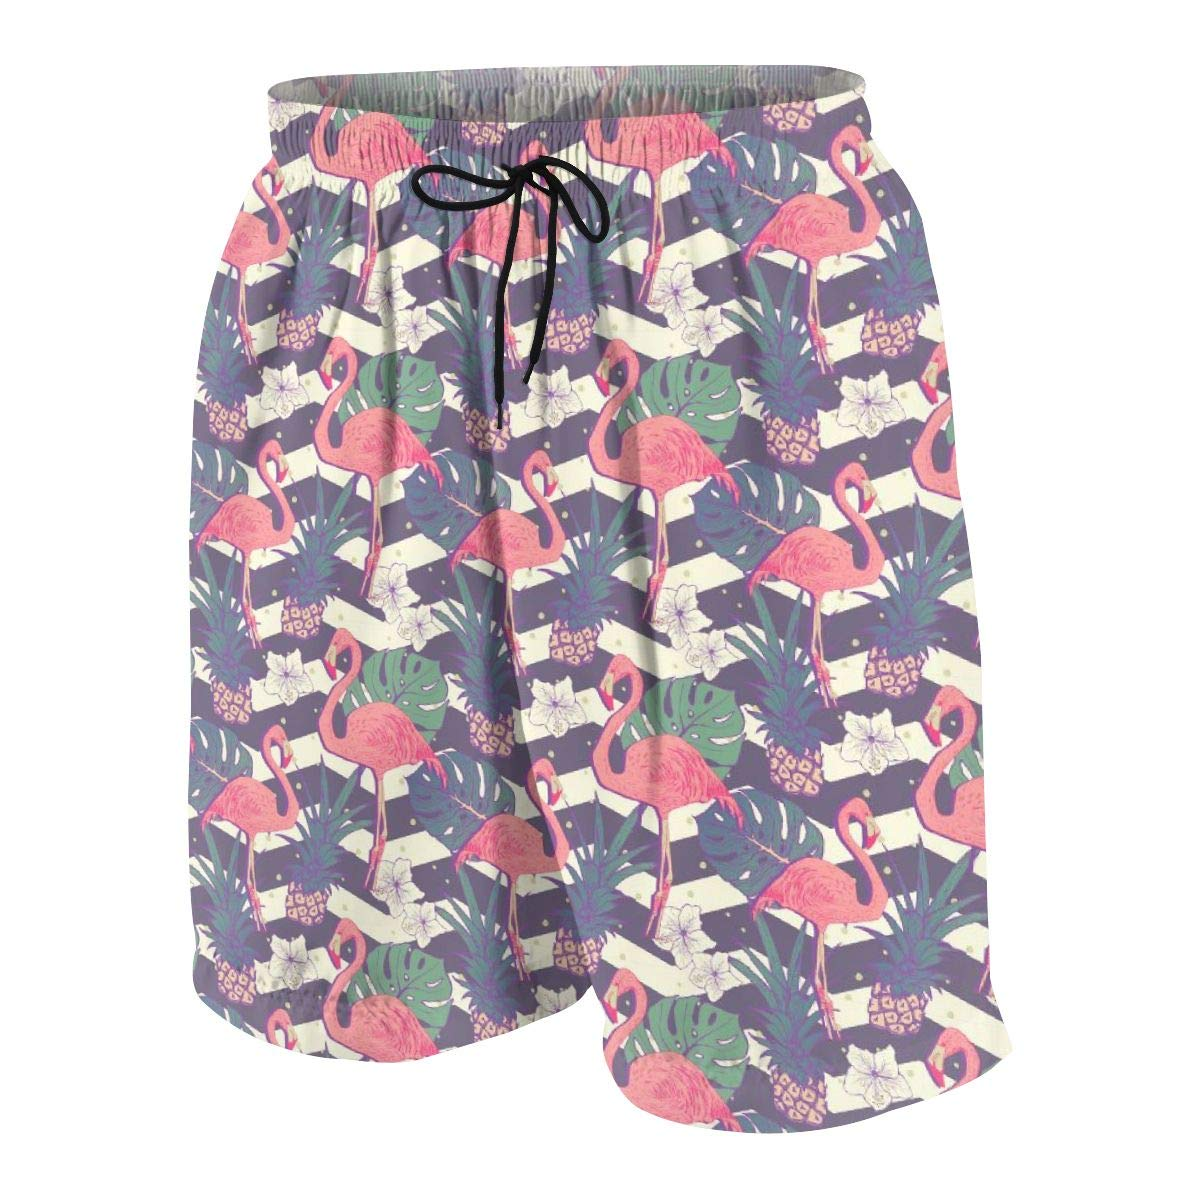 Man Board Shorts Swimtrunks Two Flamingo Novelty Surfing Beach Summer Outfit Pants